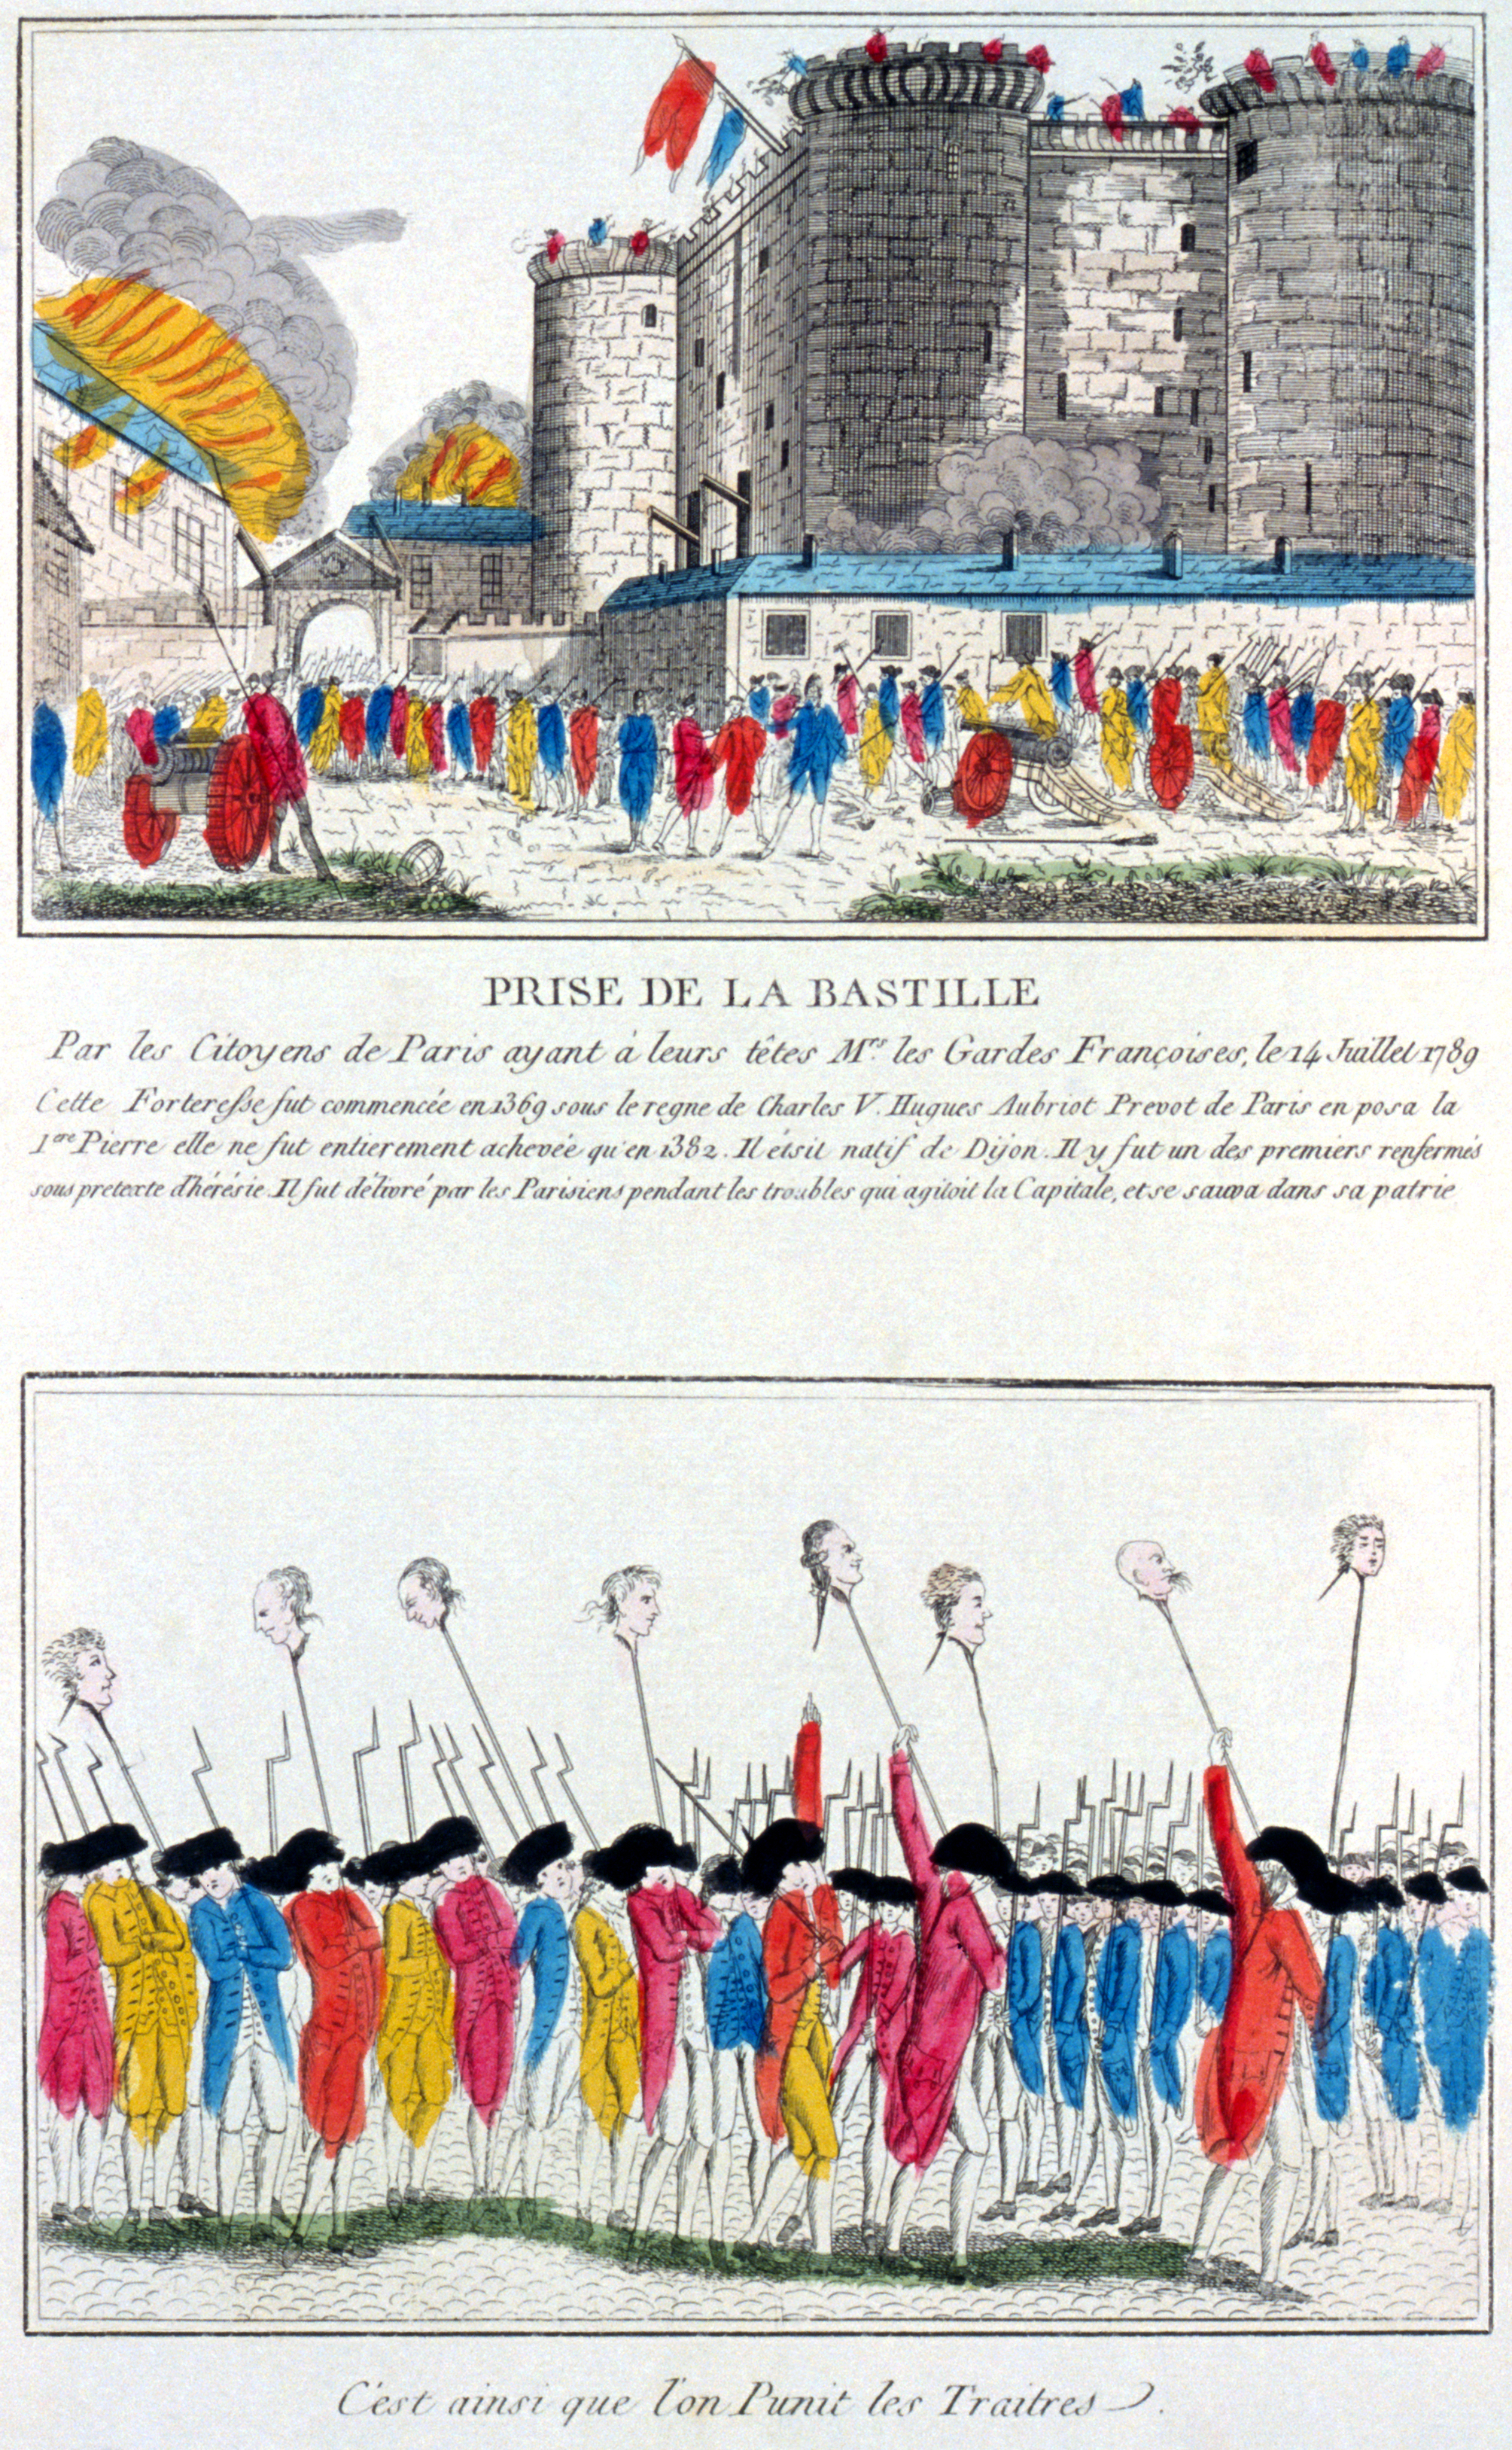 Storming the bastille 4